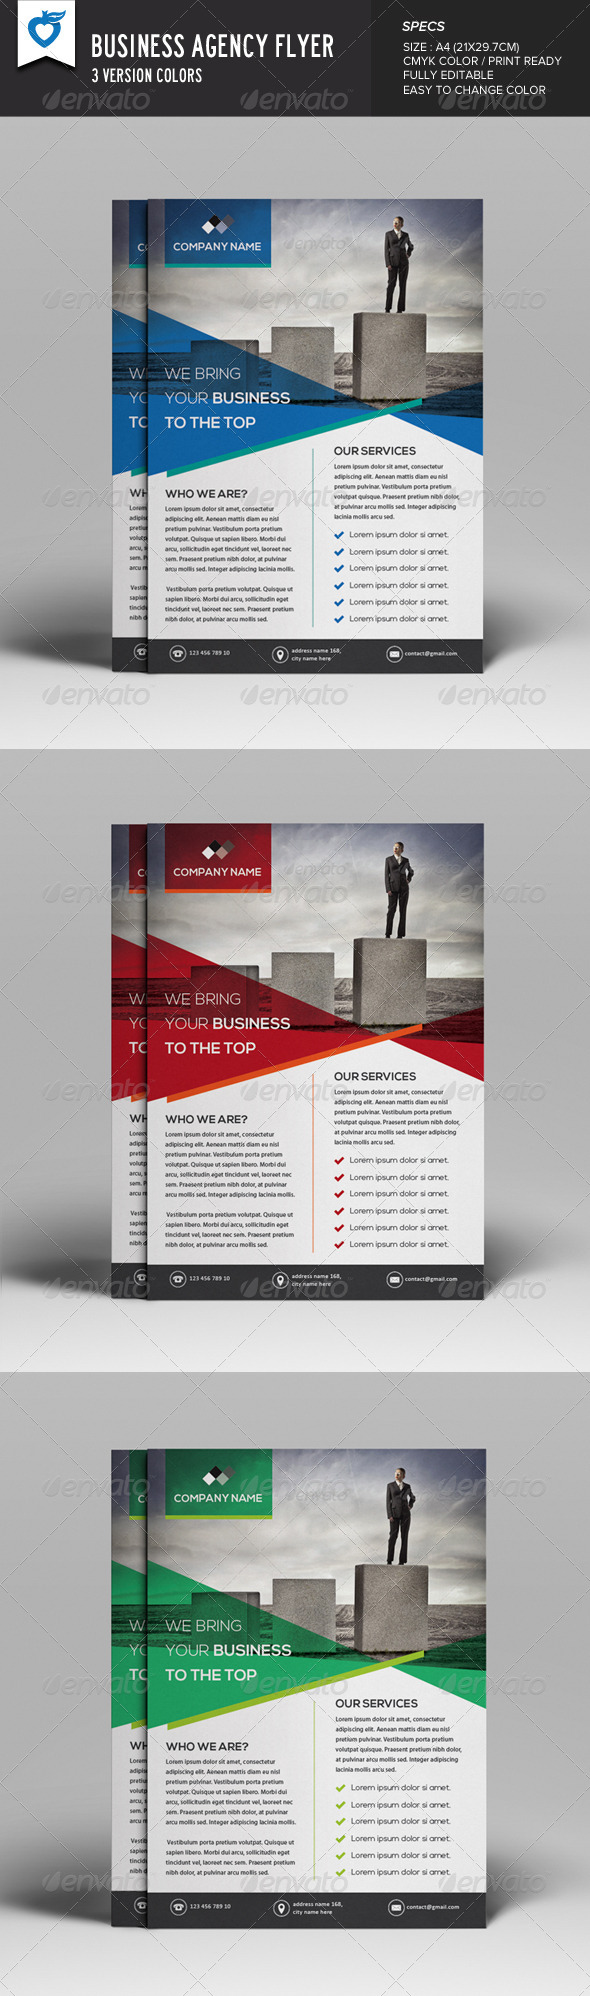 GraphicRiver Business Agency Flyer 8257459